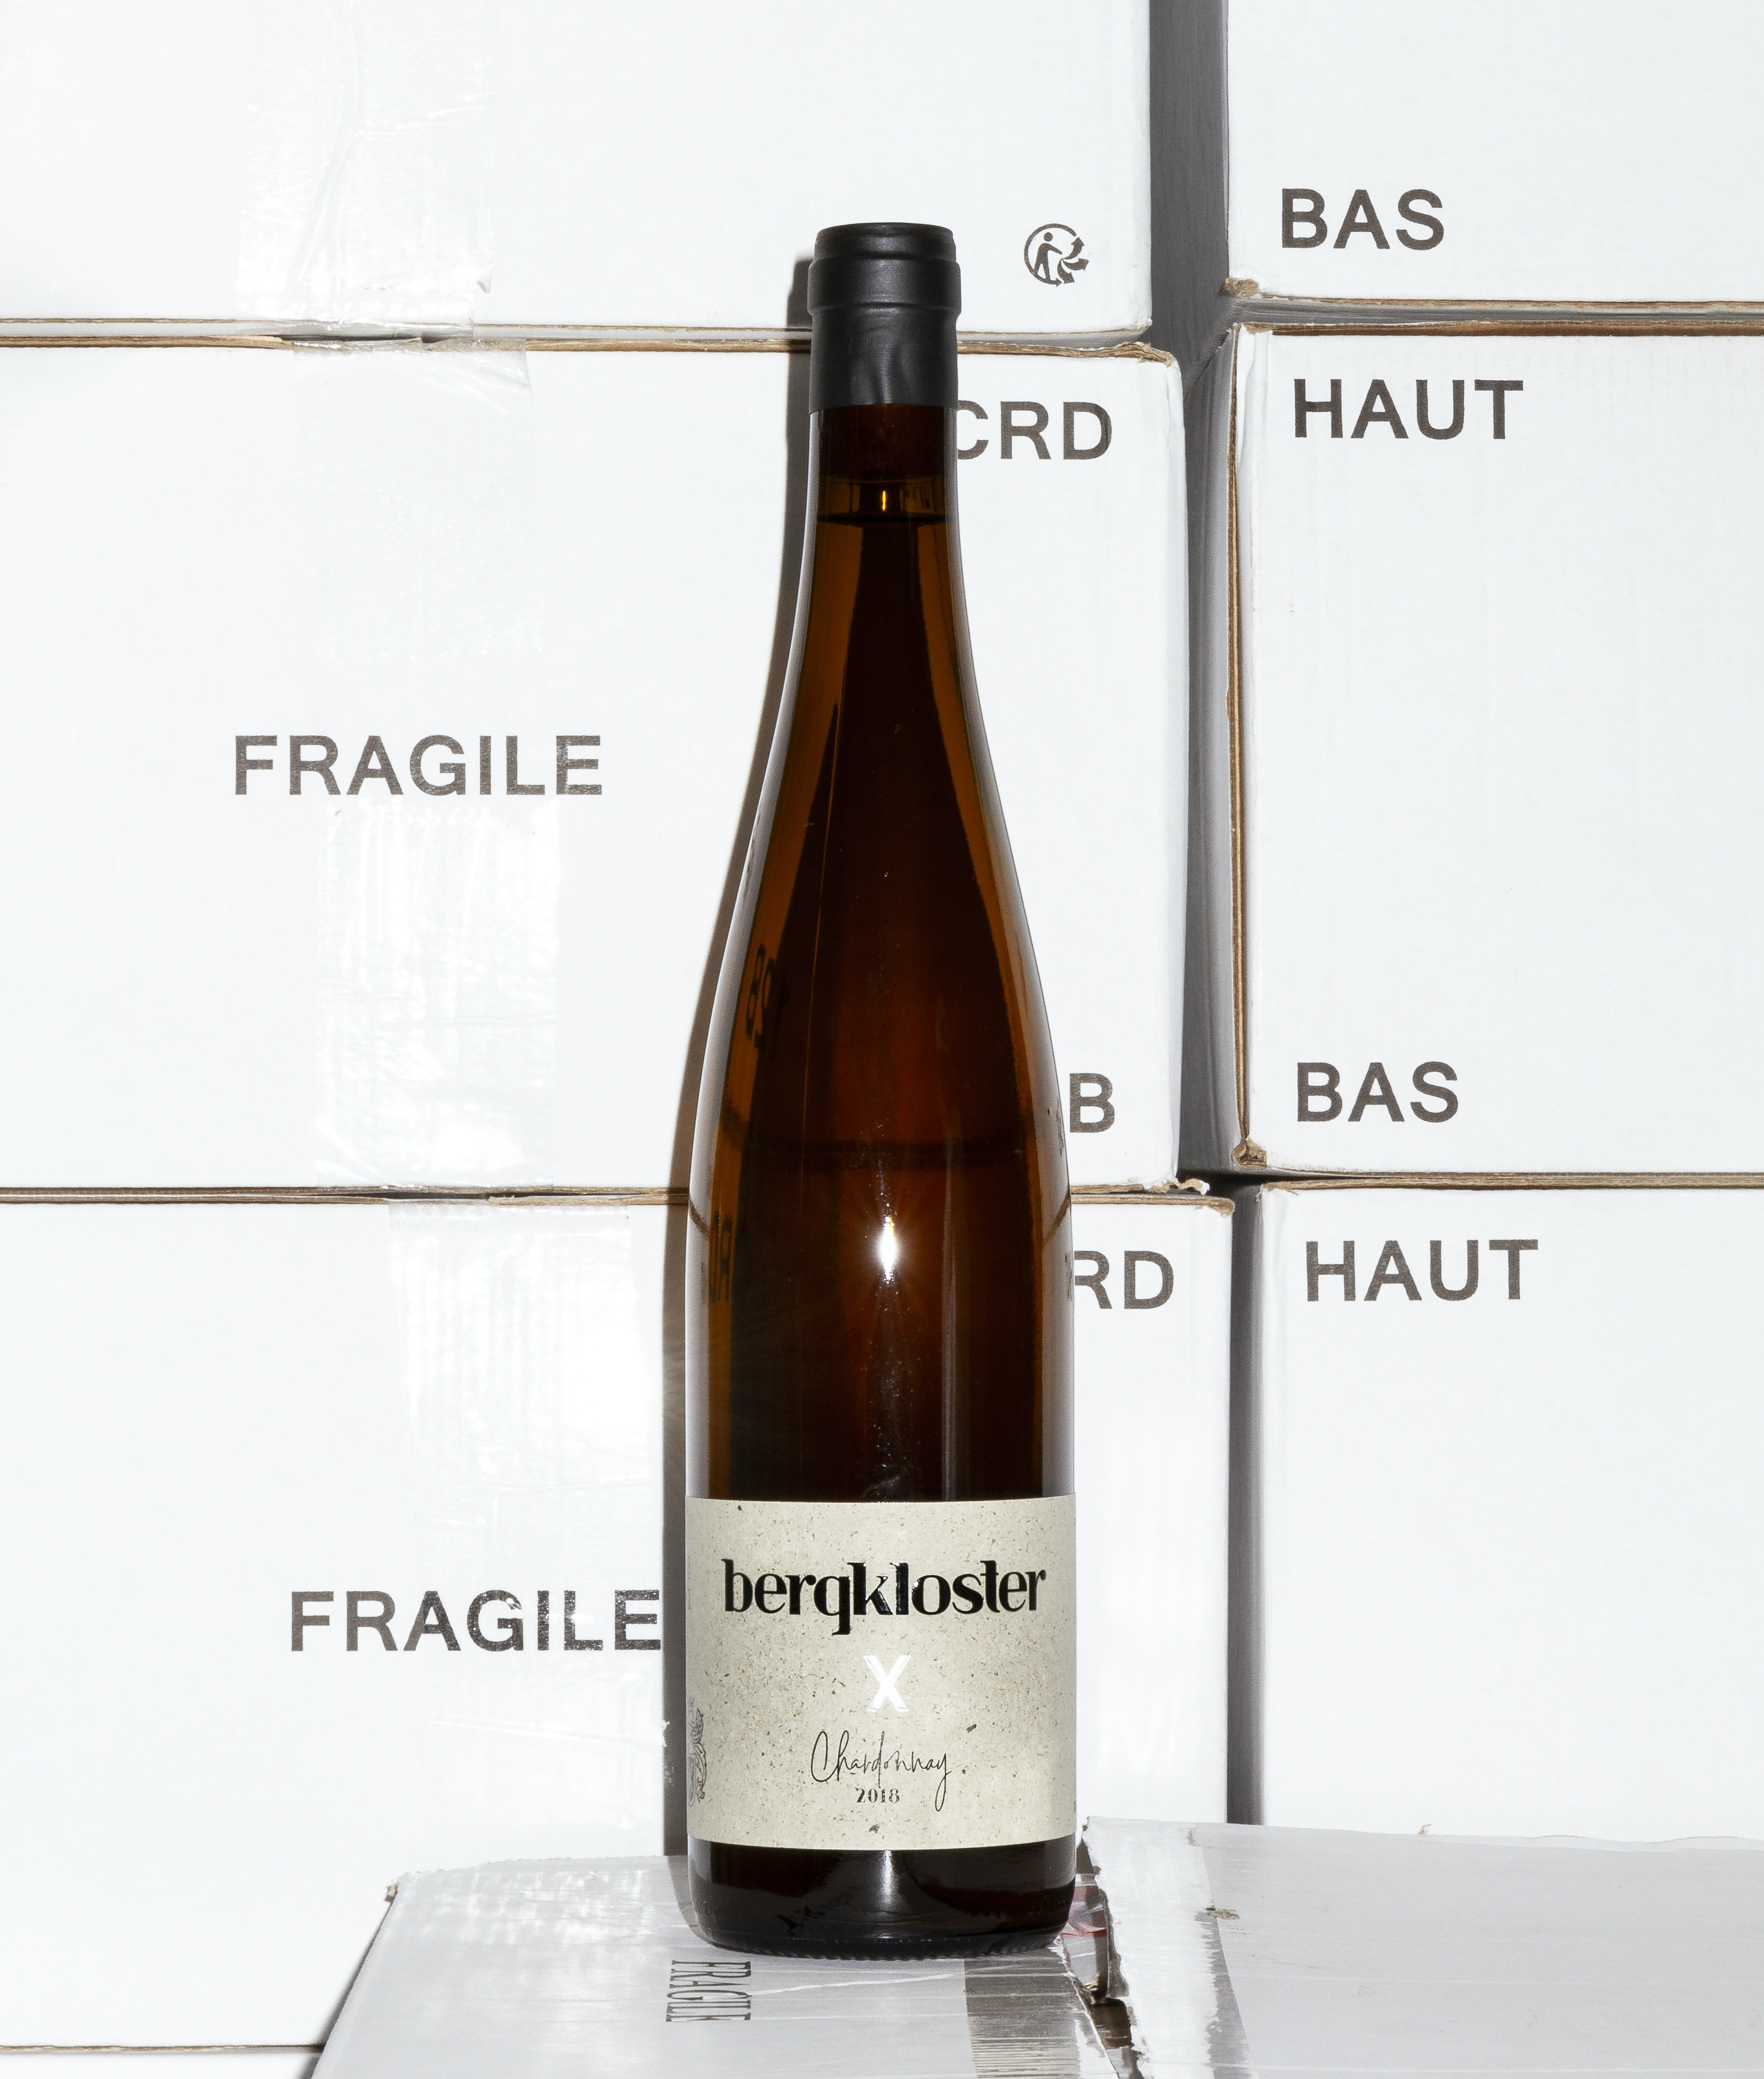 Chardonnay 2018 by Bergkloster